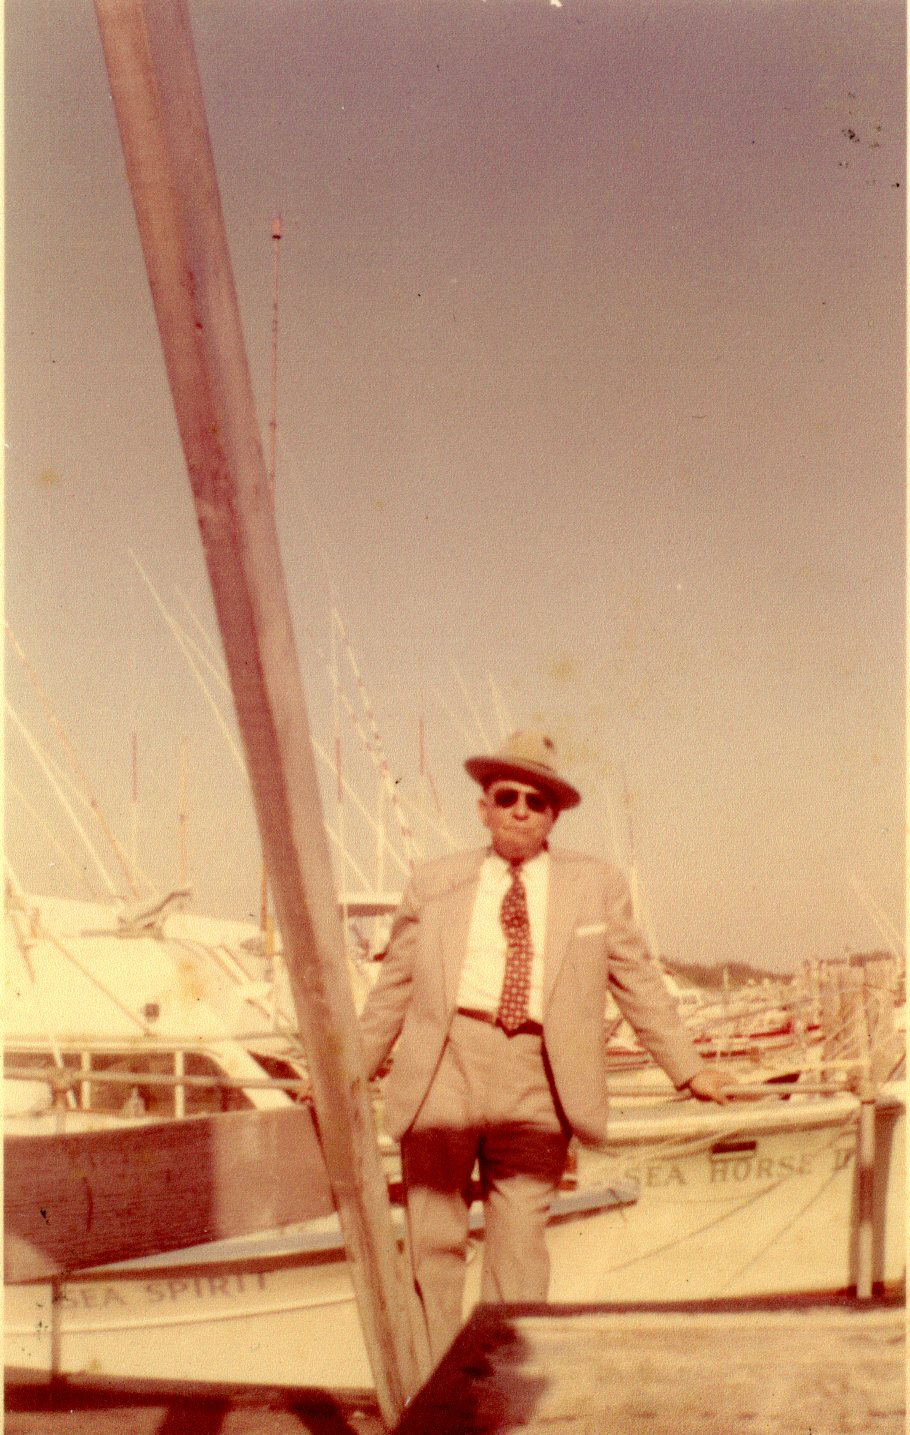 George Kousaleos Sr. in Tarpon Springs, Florida, circa 1959. Kousaleos, owner of the Philadelphia-based Gulf of Mexico Sponge Company, purchased  the sponge warehouse building now located at Heritage Village from it's original owner in the mid-1950s.